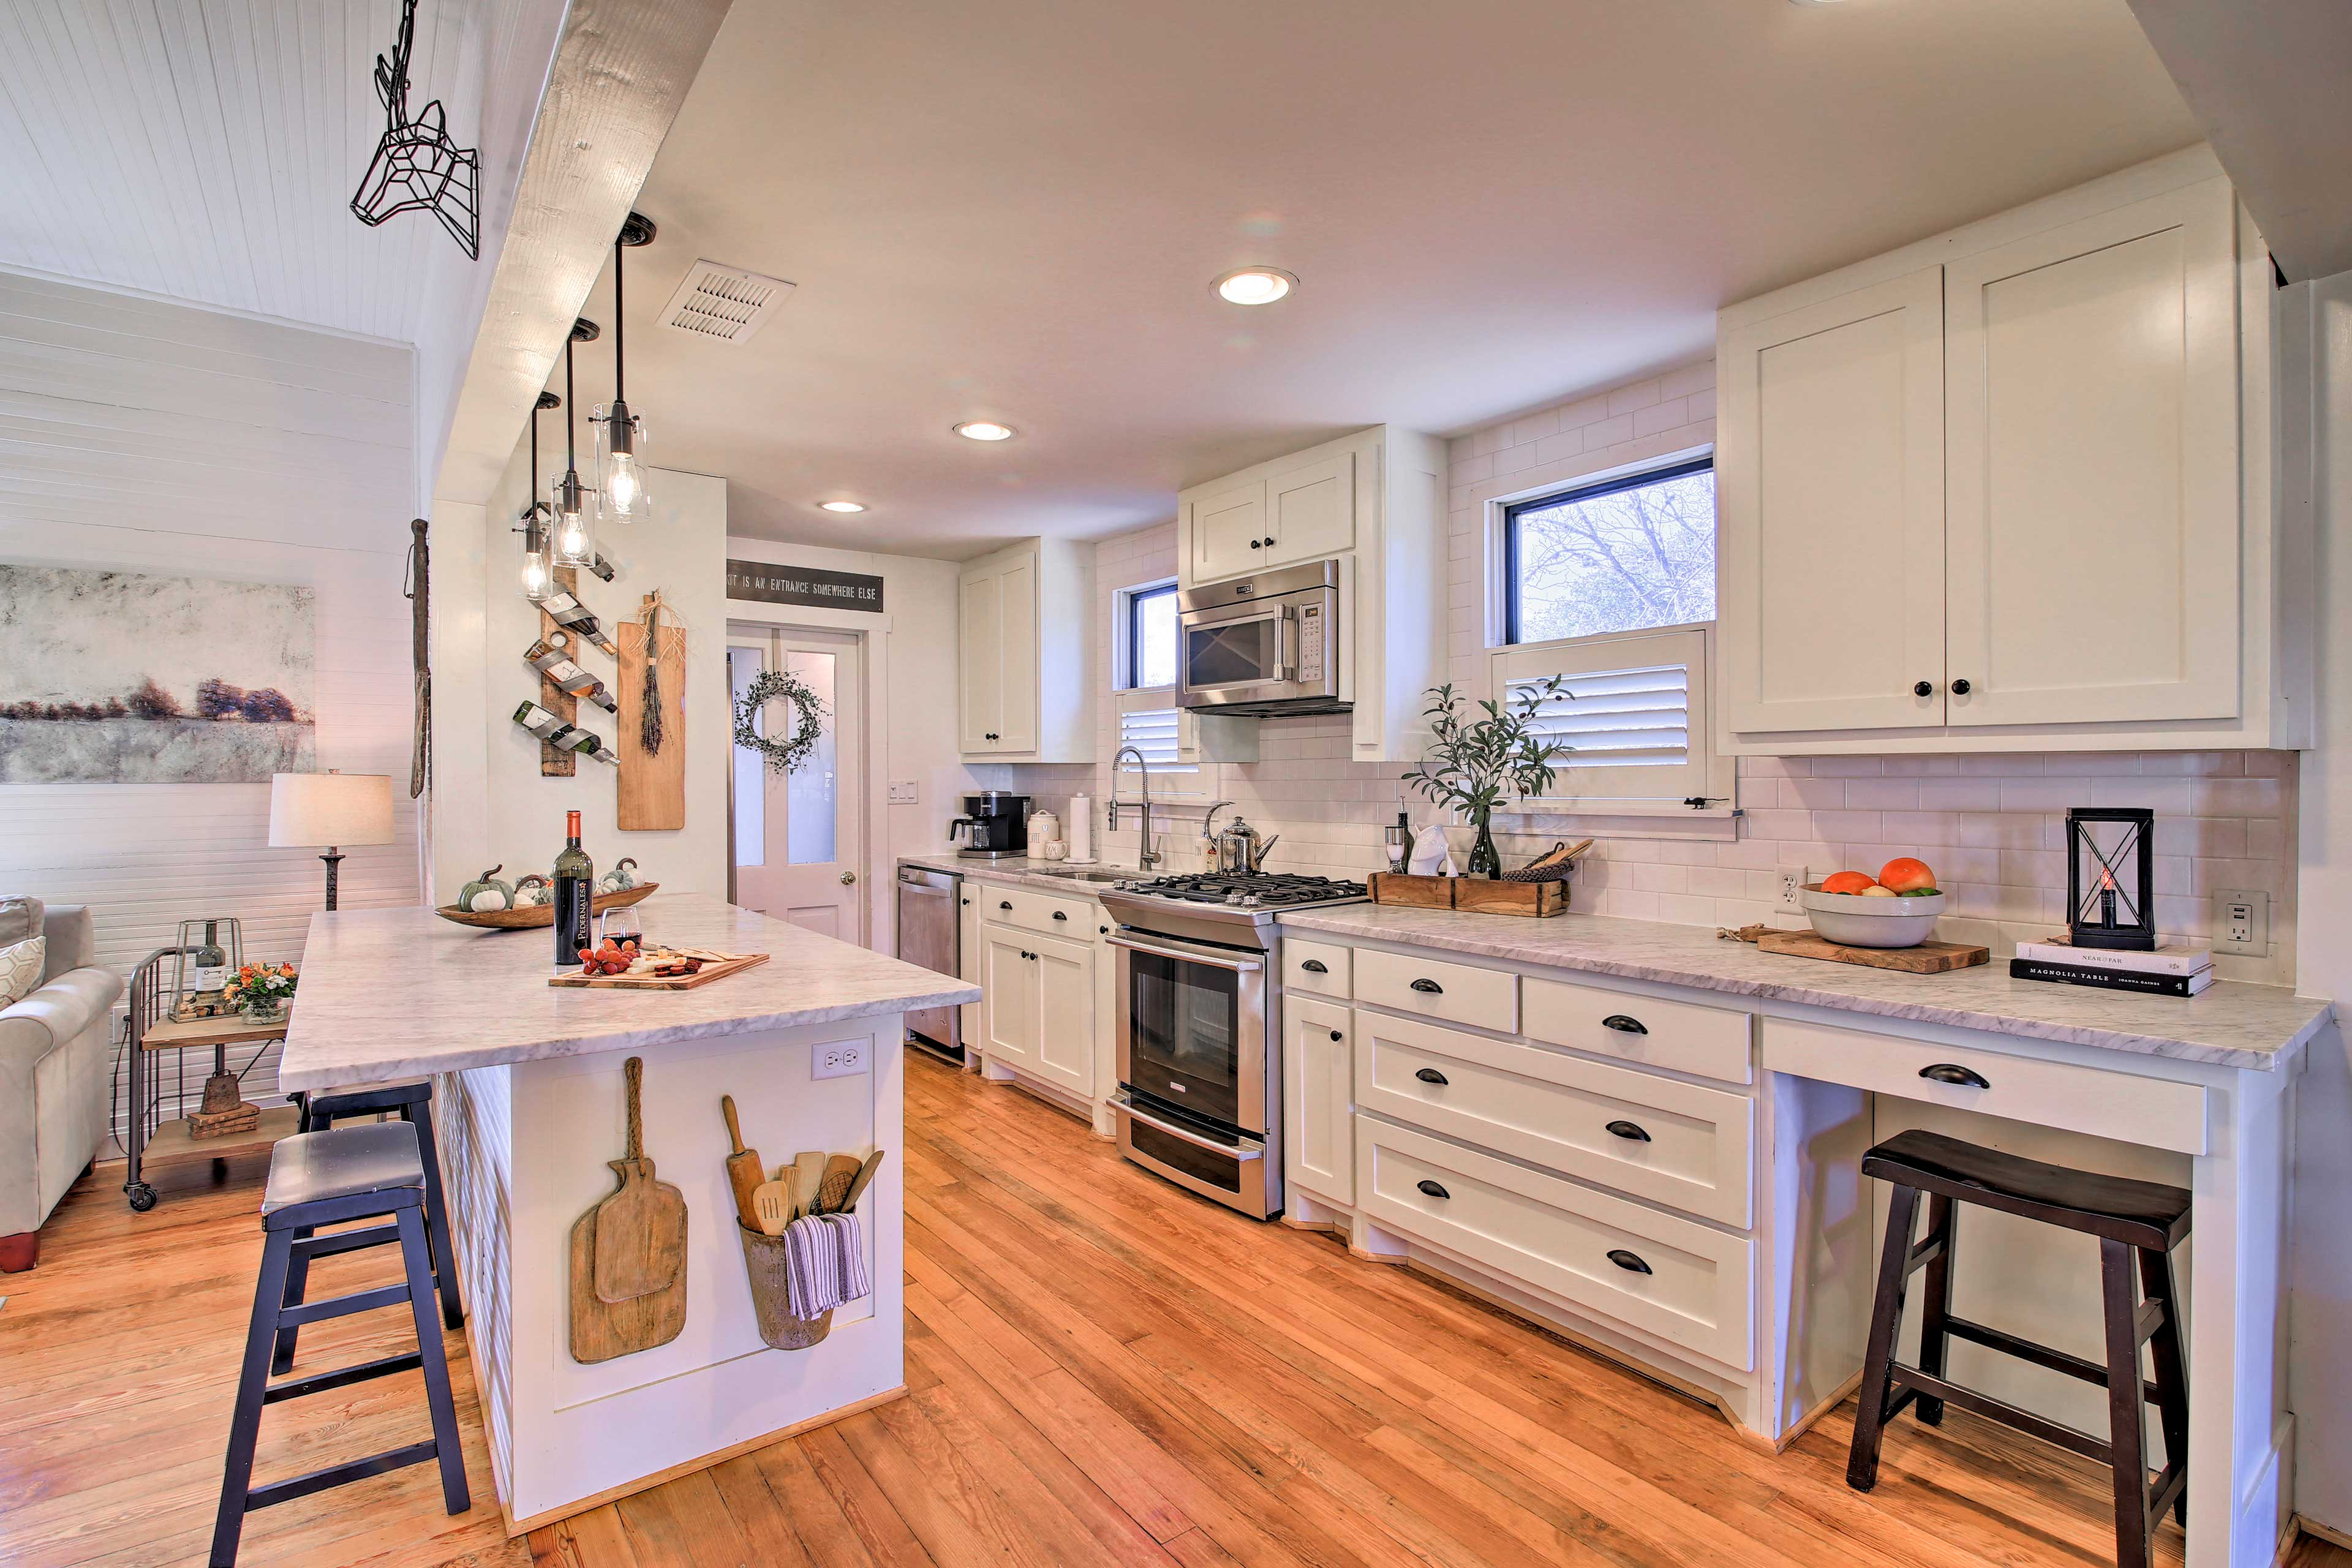 Kitchen | Full Equipped w/ Cooking Basics